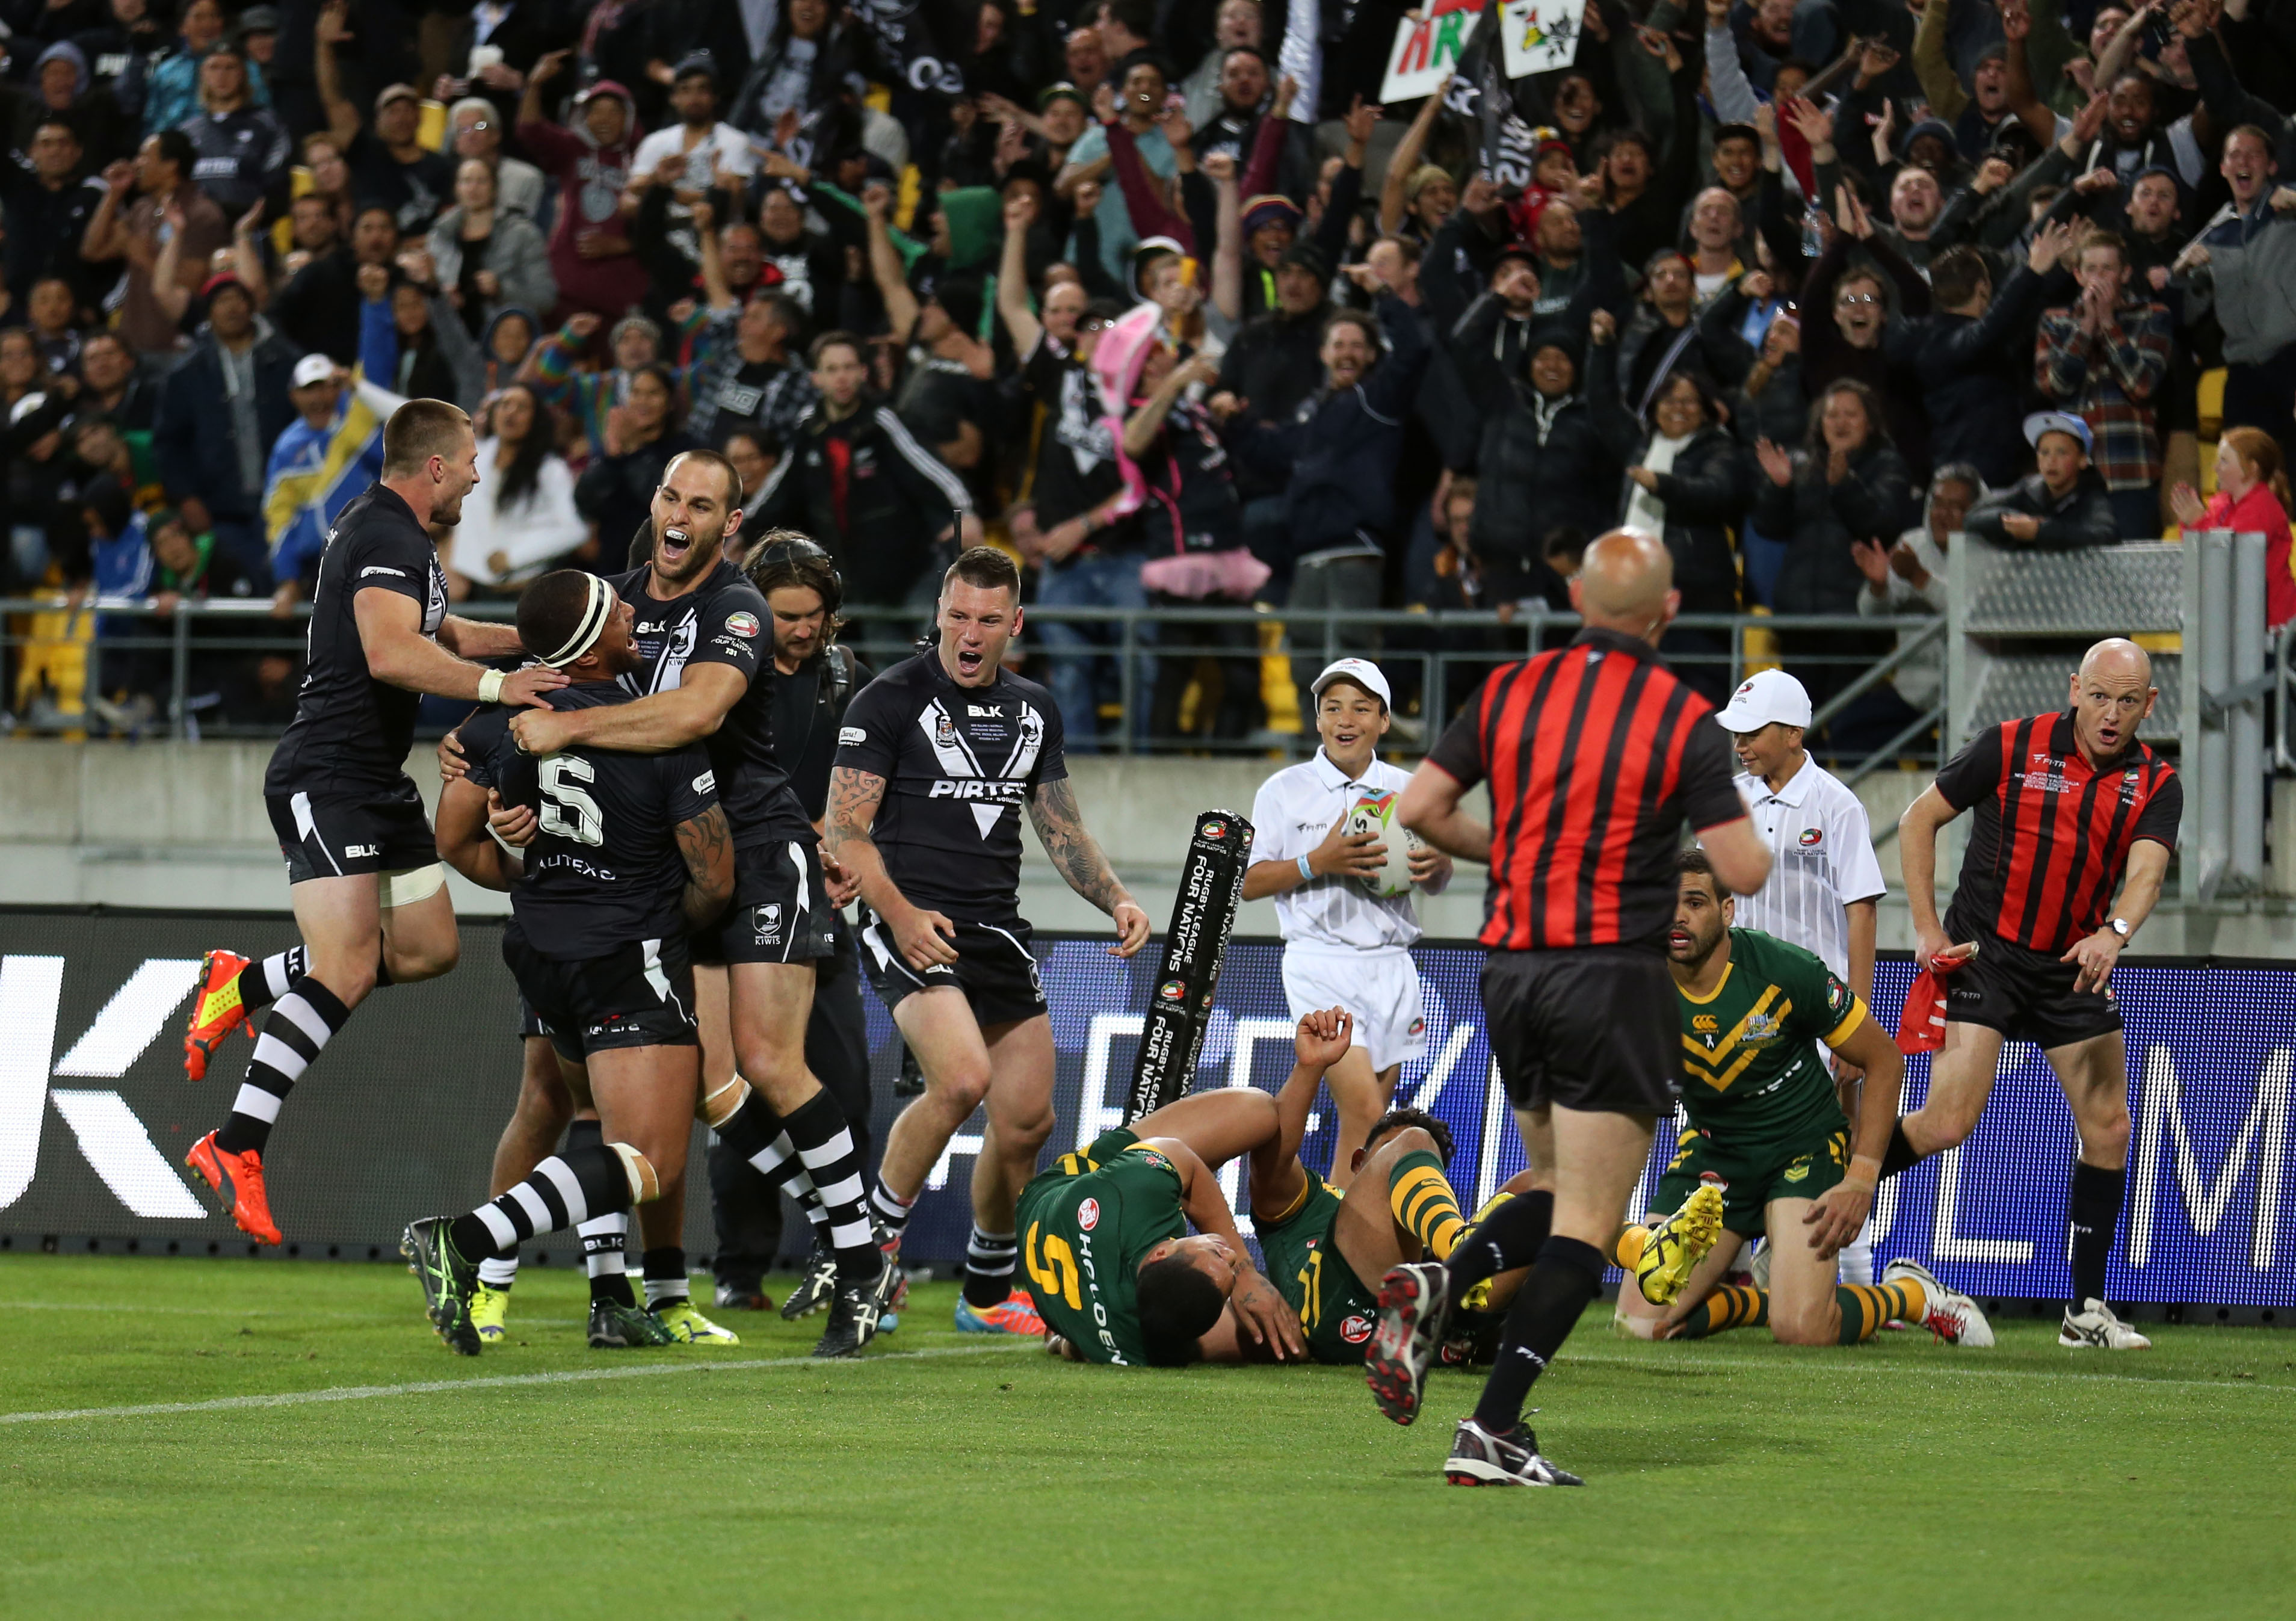 RLIF release updated World Rankings